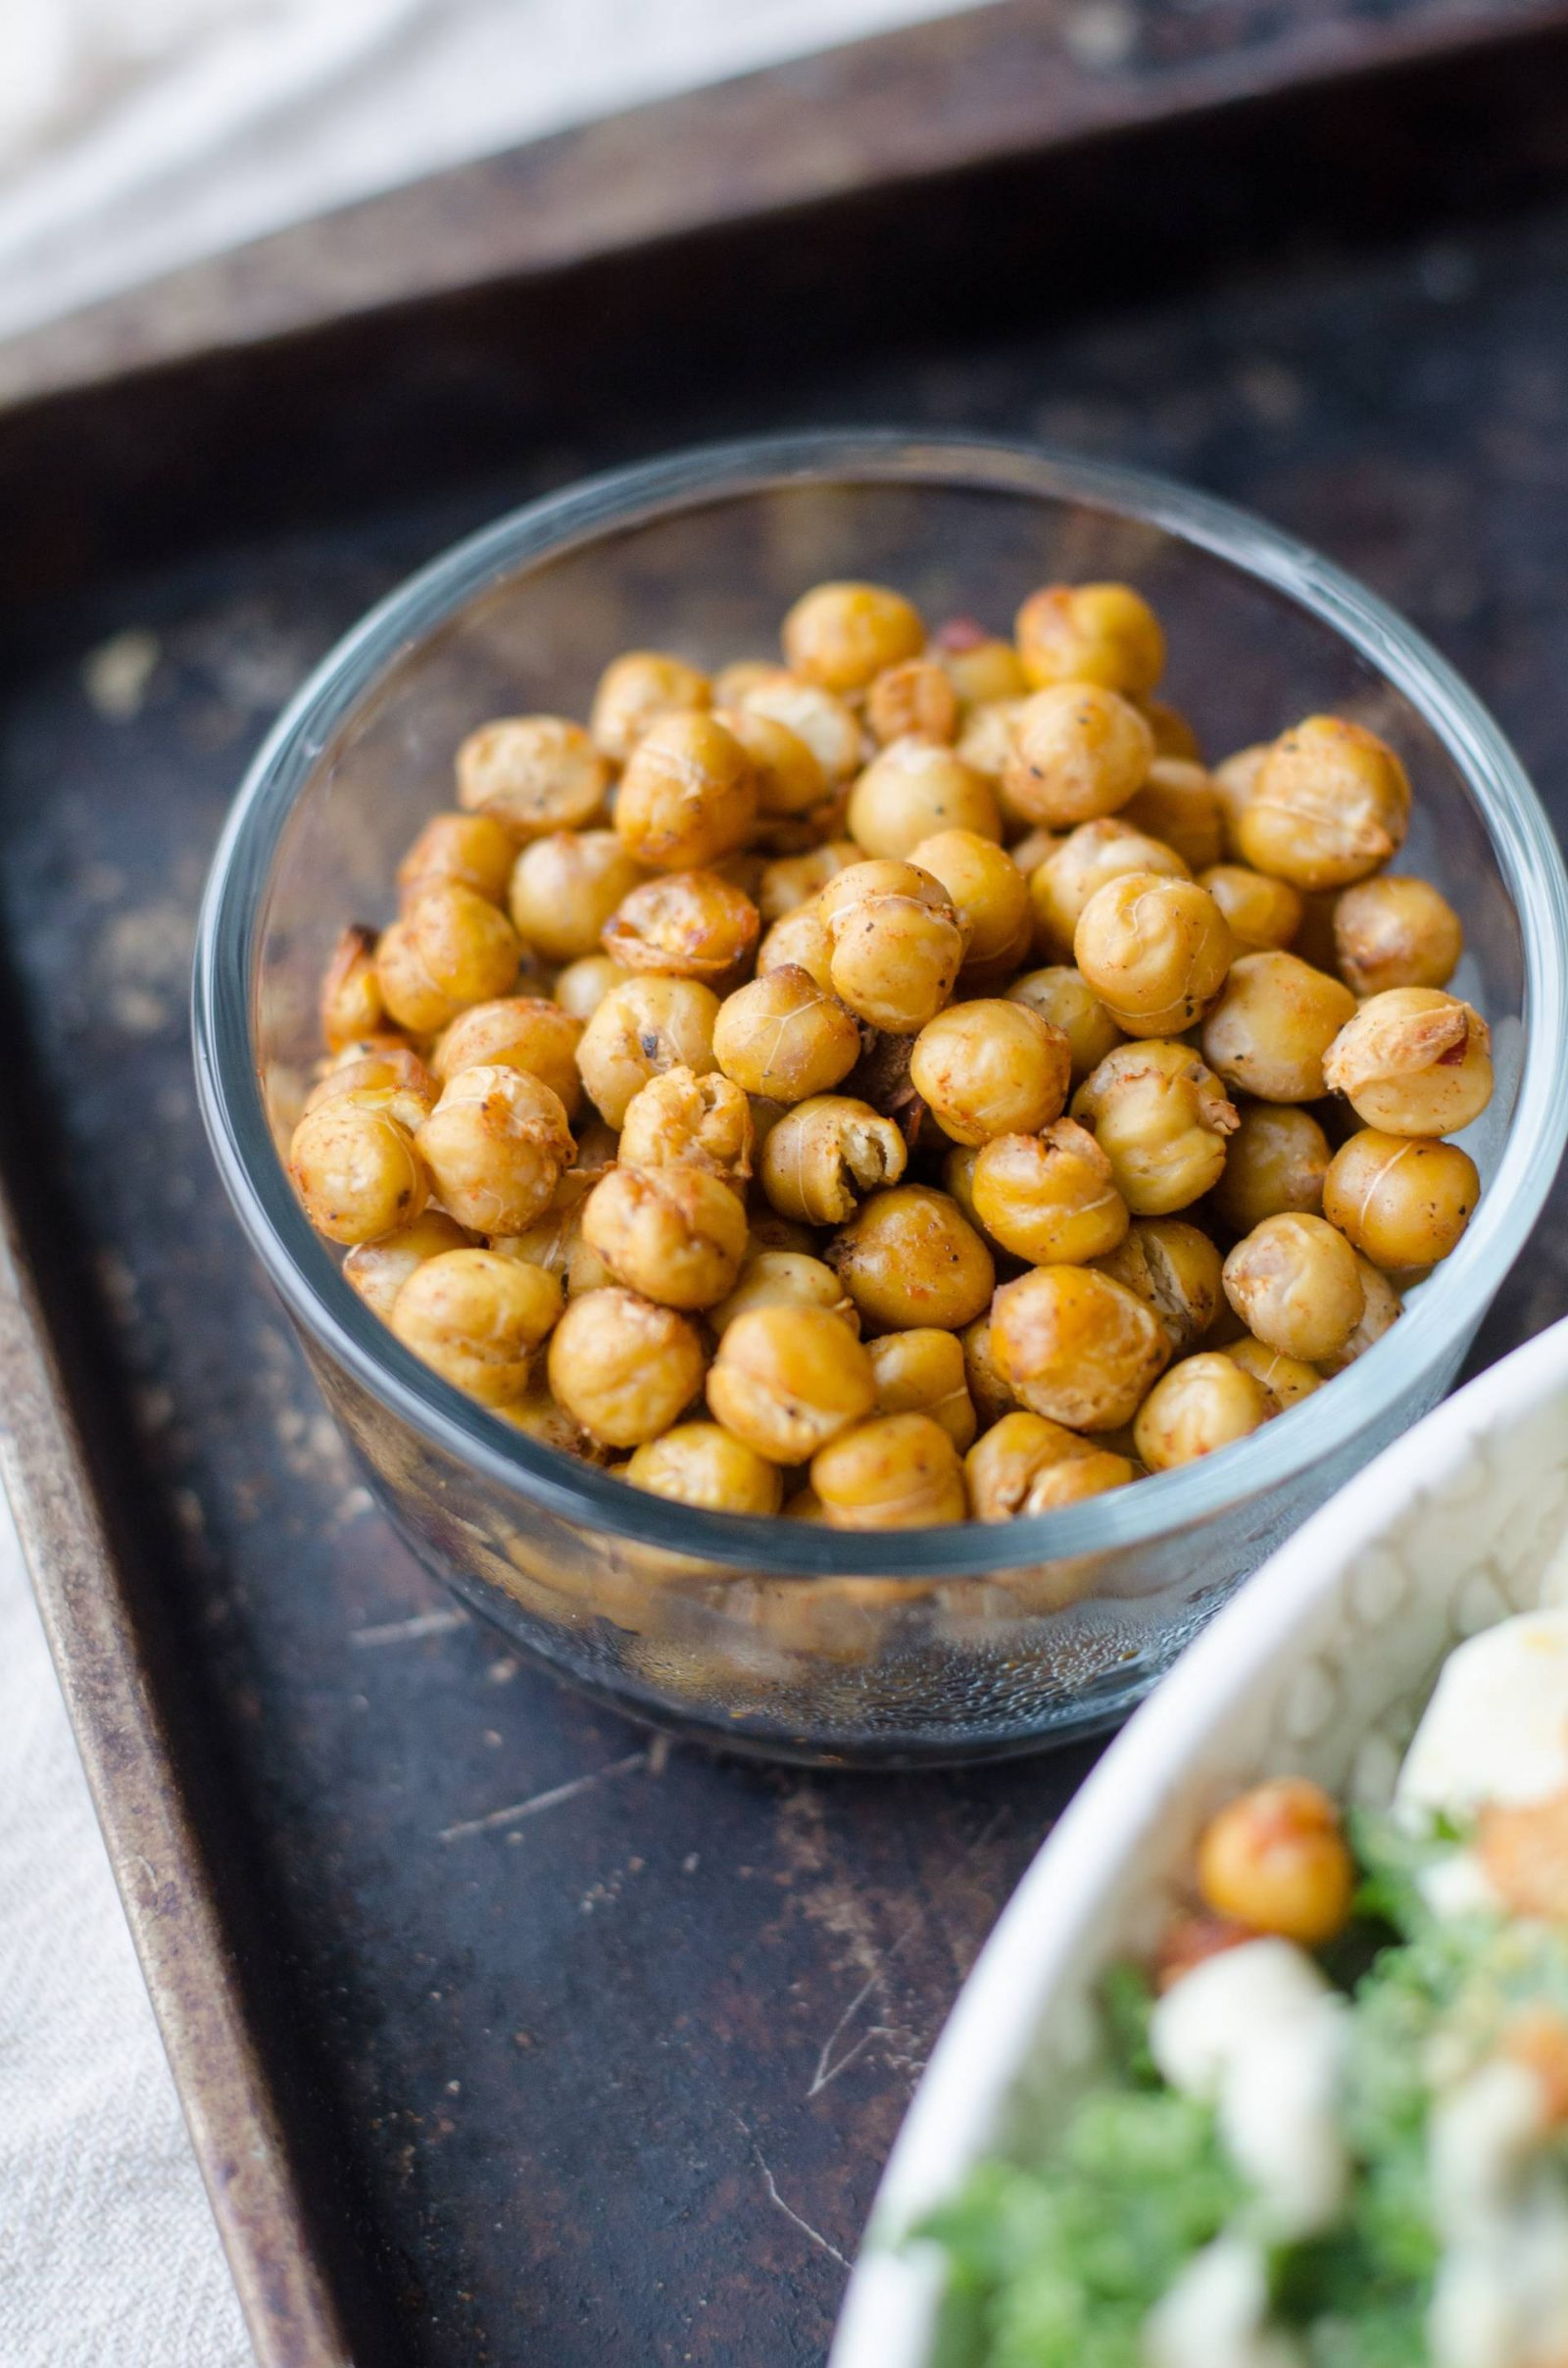 Six months of being vegan, bowl of chickpeas